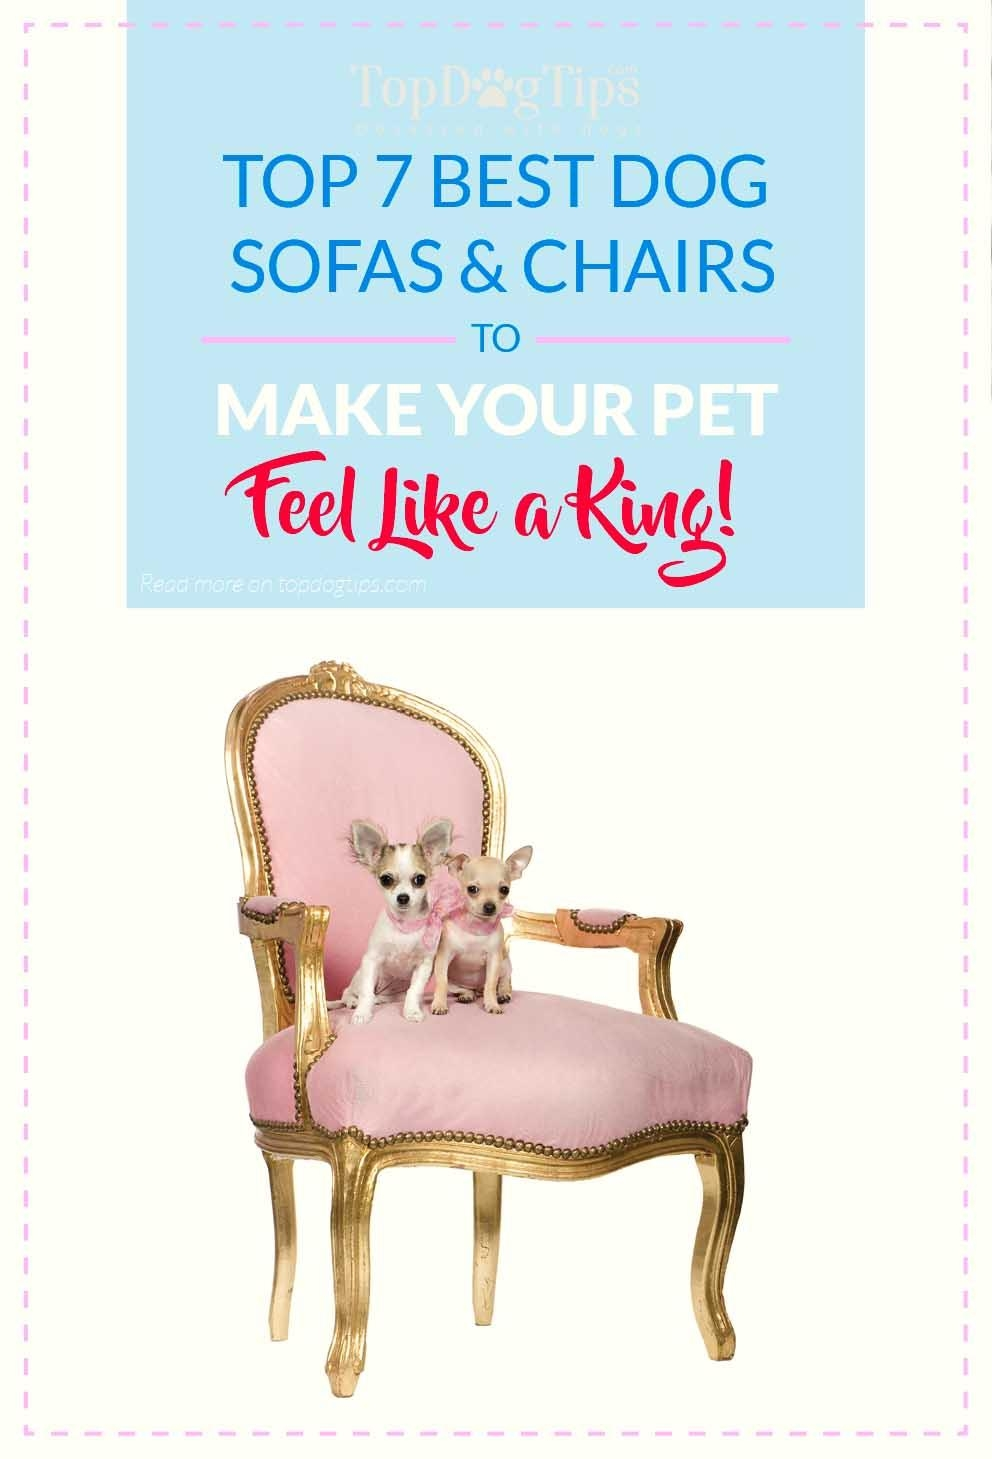 Top 7 Best Dog Sofas And Chairs For Stylish Home Decor In 2017 Pertaining To Dog Sofas And Chairs (View 10 of 20)